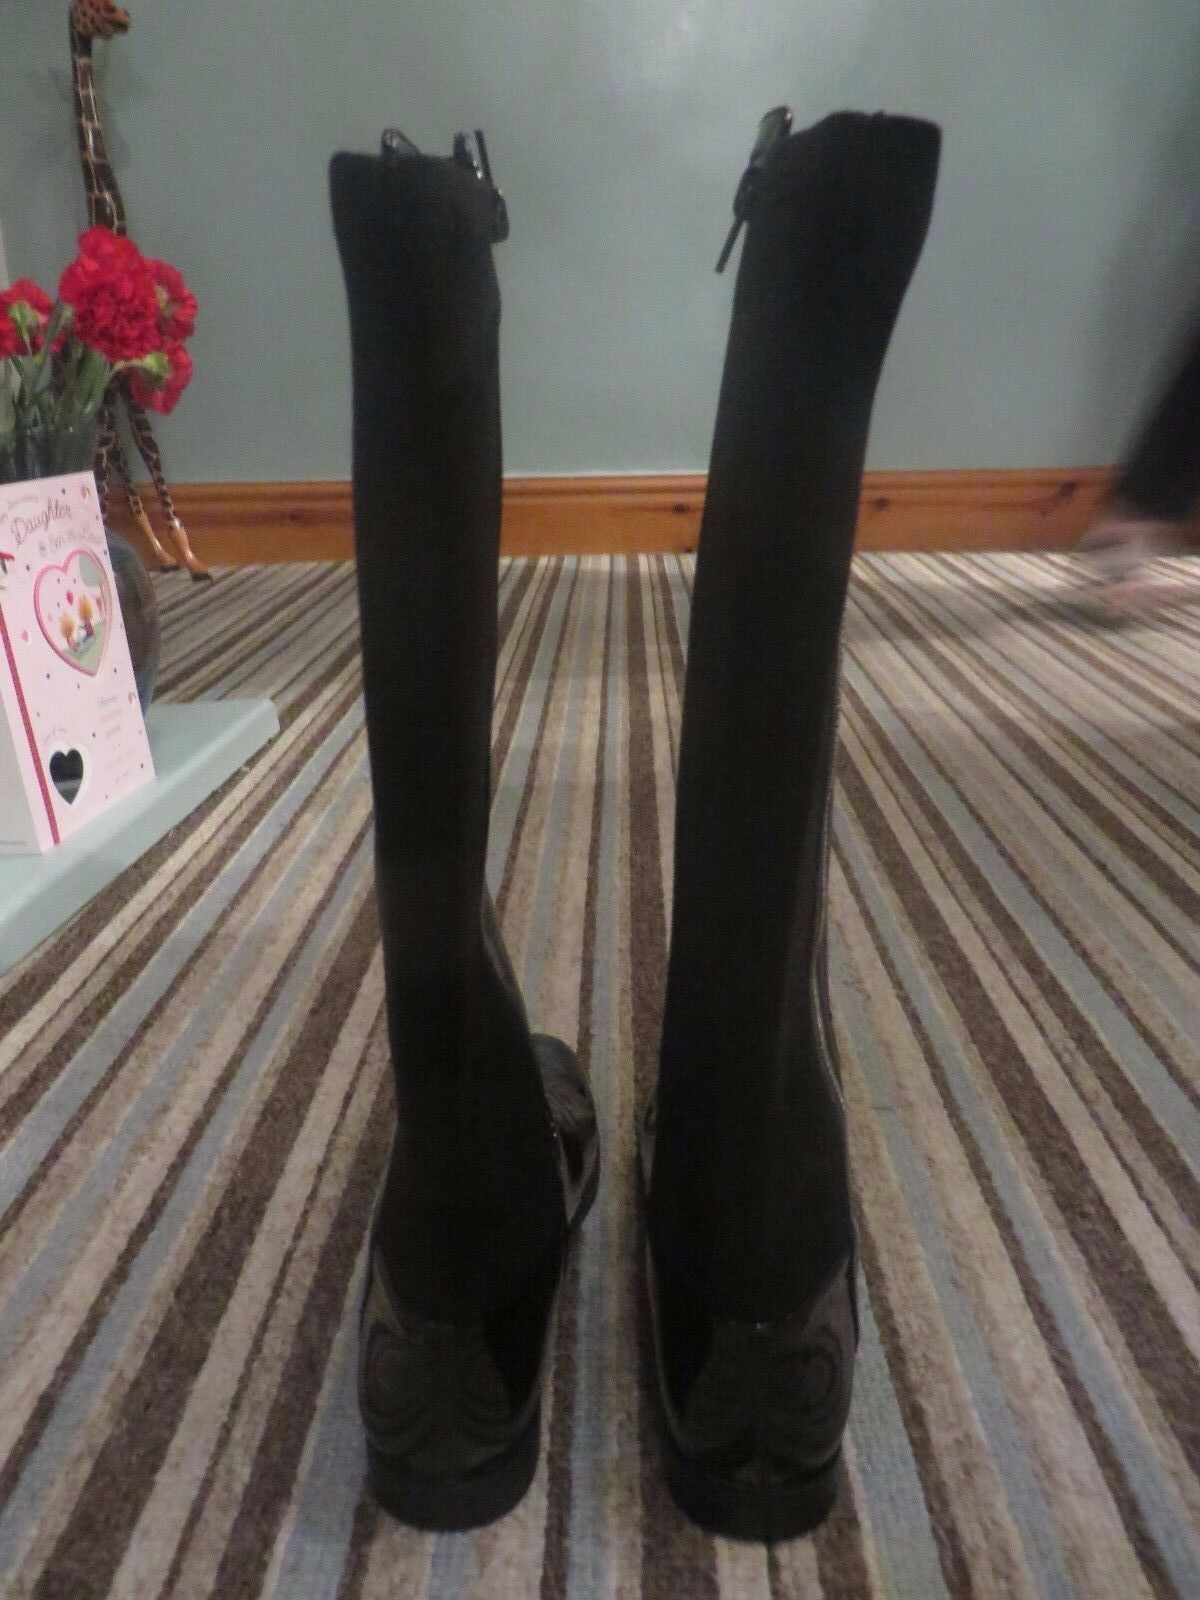 Ladies womens long boots black next next next size 5 patent and suede brand new zips up 4f3e20